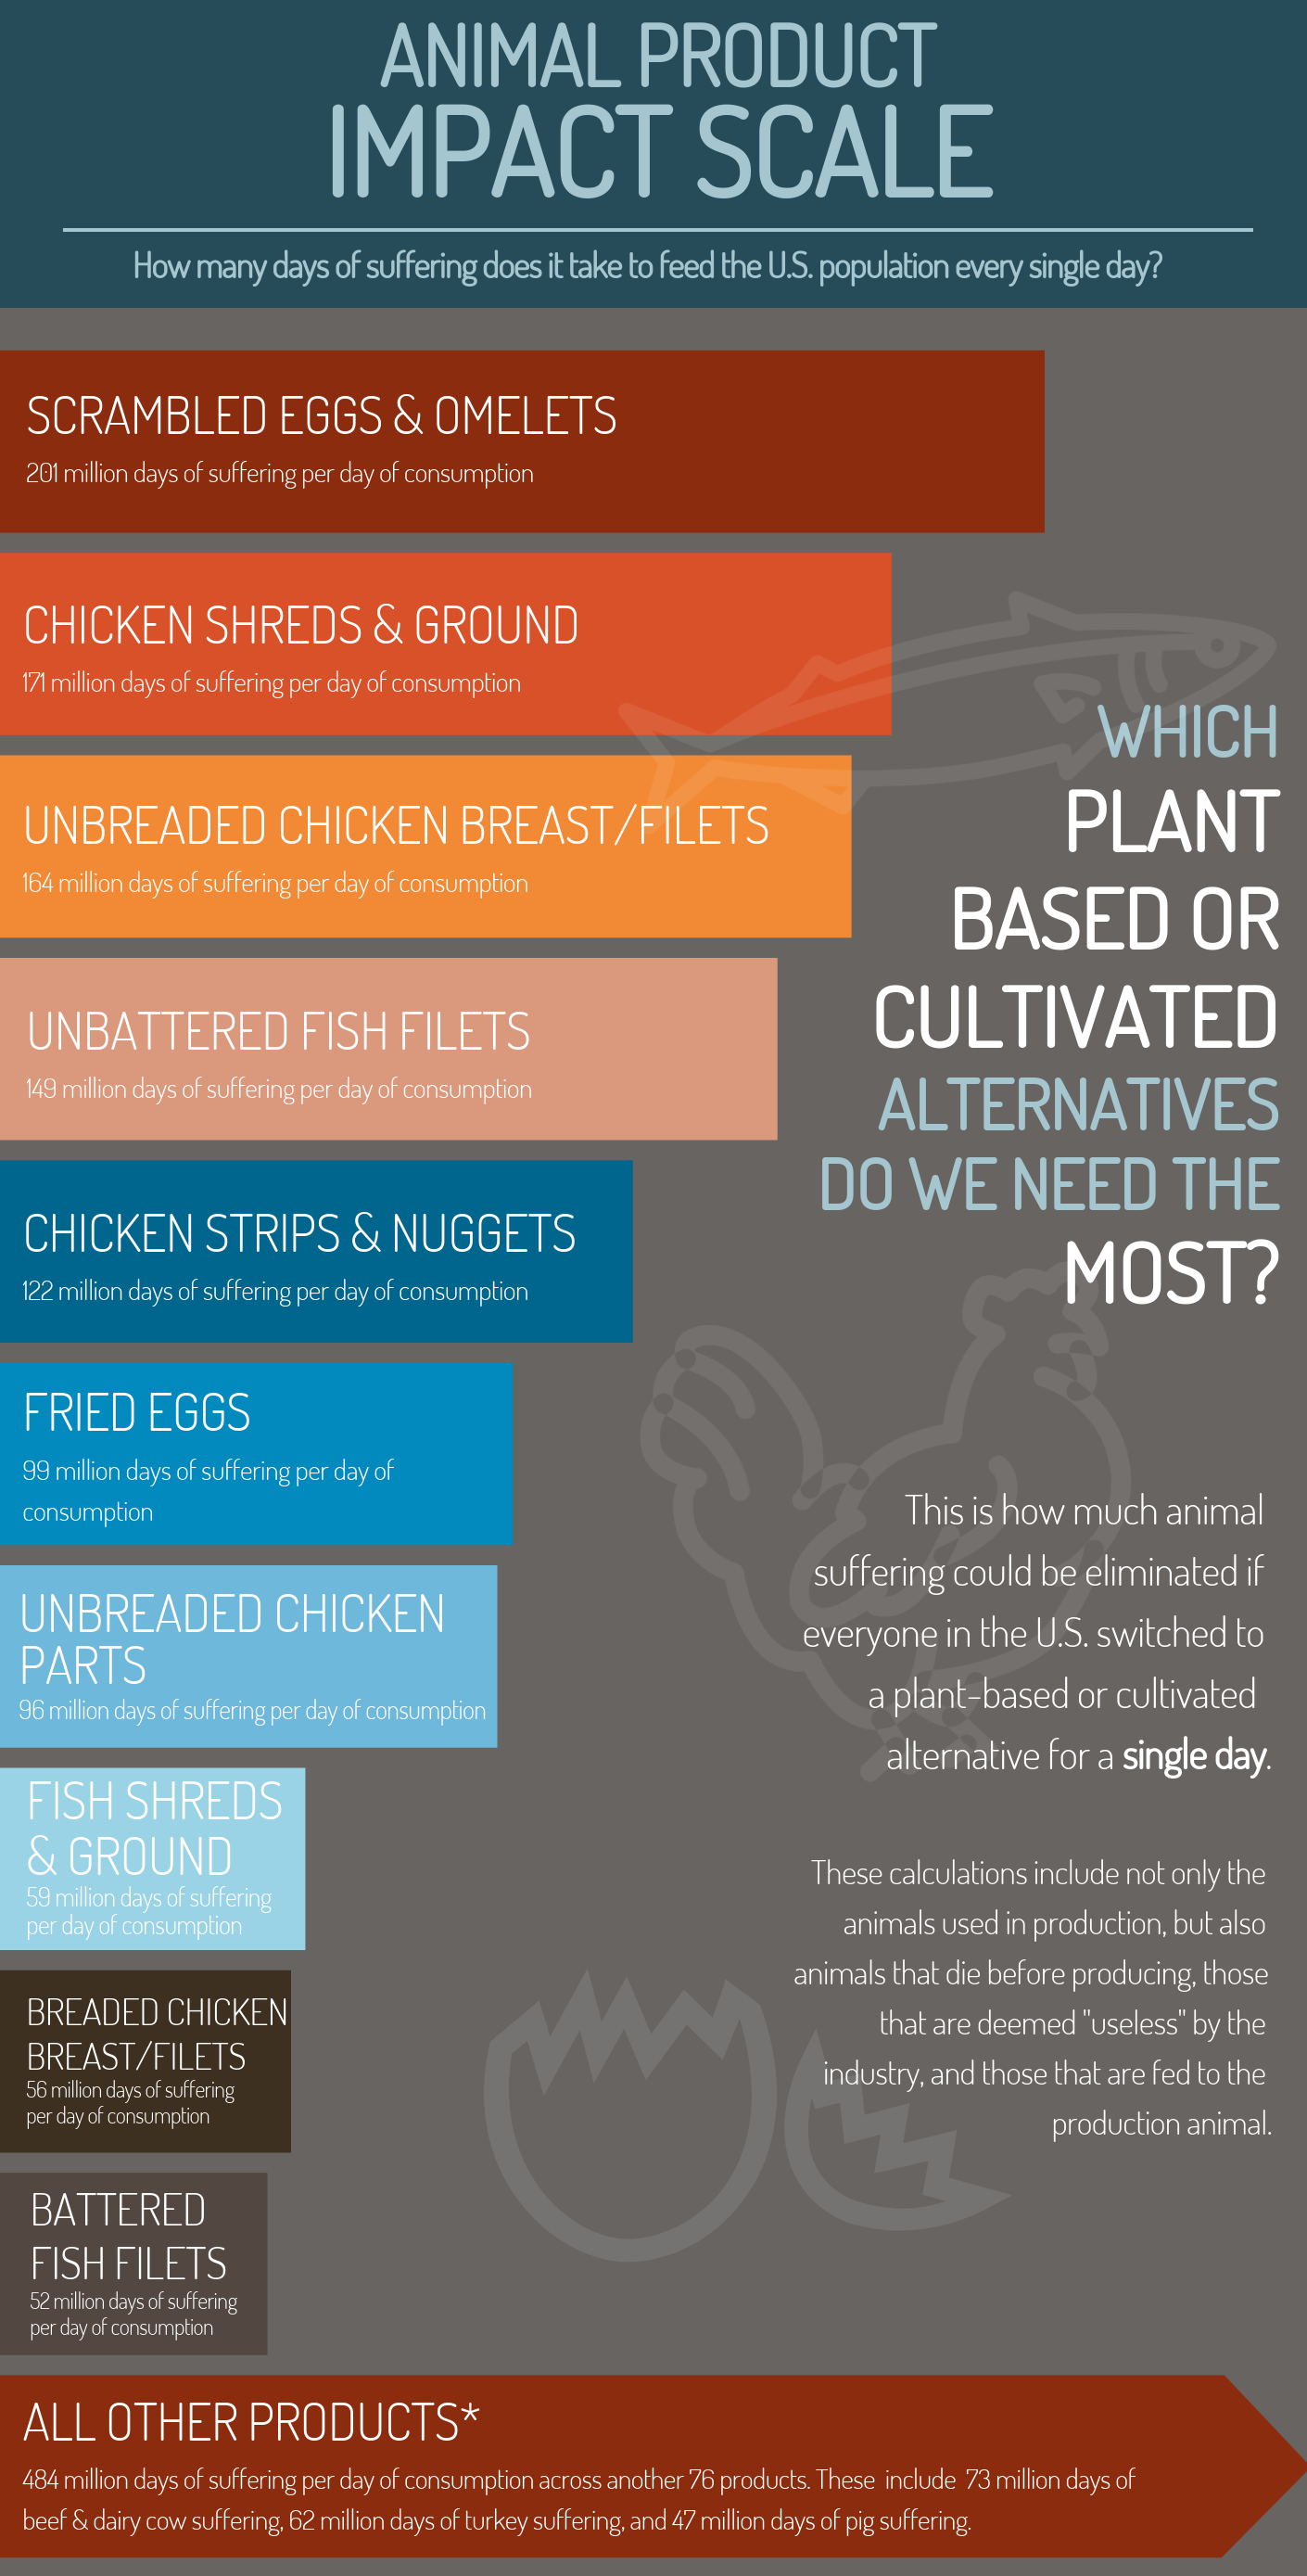 This scale lists the top 10 products that cause the most days of animal suffering to feed the U.S. population every day. They include scrambled eggs & omelets (201 million days of suffering per day of consumption), chicken shreds & ground (171 million days of suffering), unbreaded chicken breasts/filets (164 million days of suffering), unbattered fish filets (149 million days of suffering), chicken strips & nuggets (122 million days of suffering), fried eggs (99 million days of suffering), unbreaded chicken parts (96 million days of suffering), fish shreds & ground (59 million days of suffering), breaded chicken breasts/filets (56 million days of suffering), and battered fish filets (52 million days of suffering).